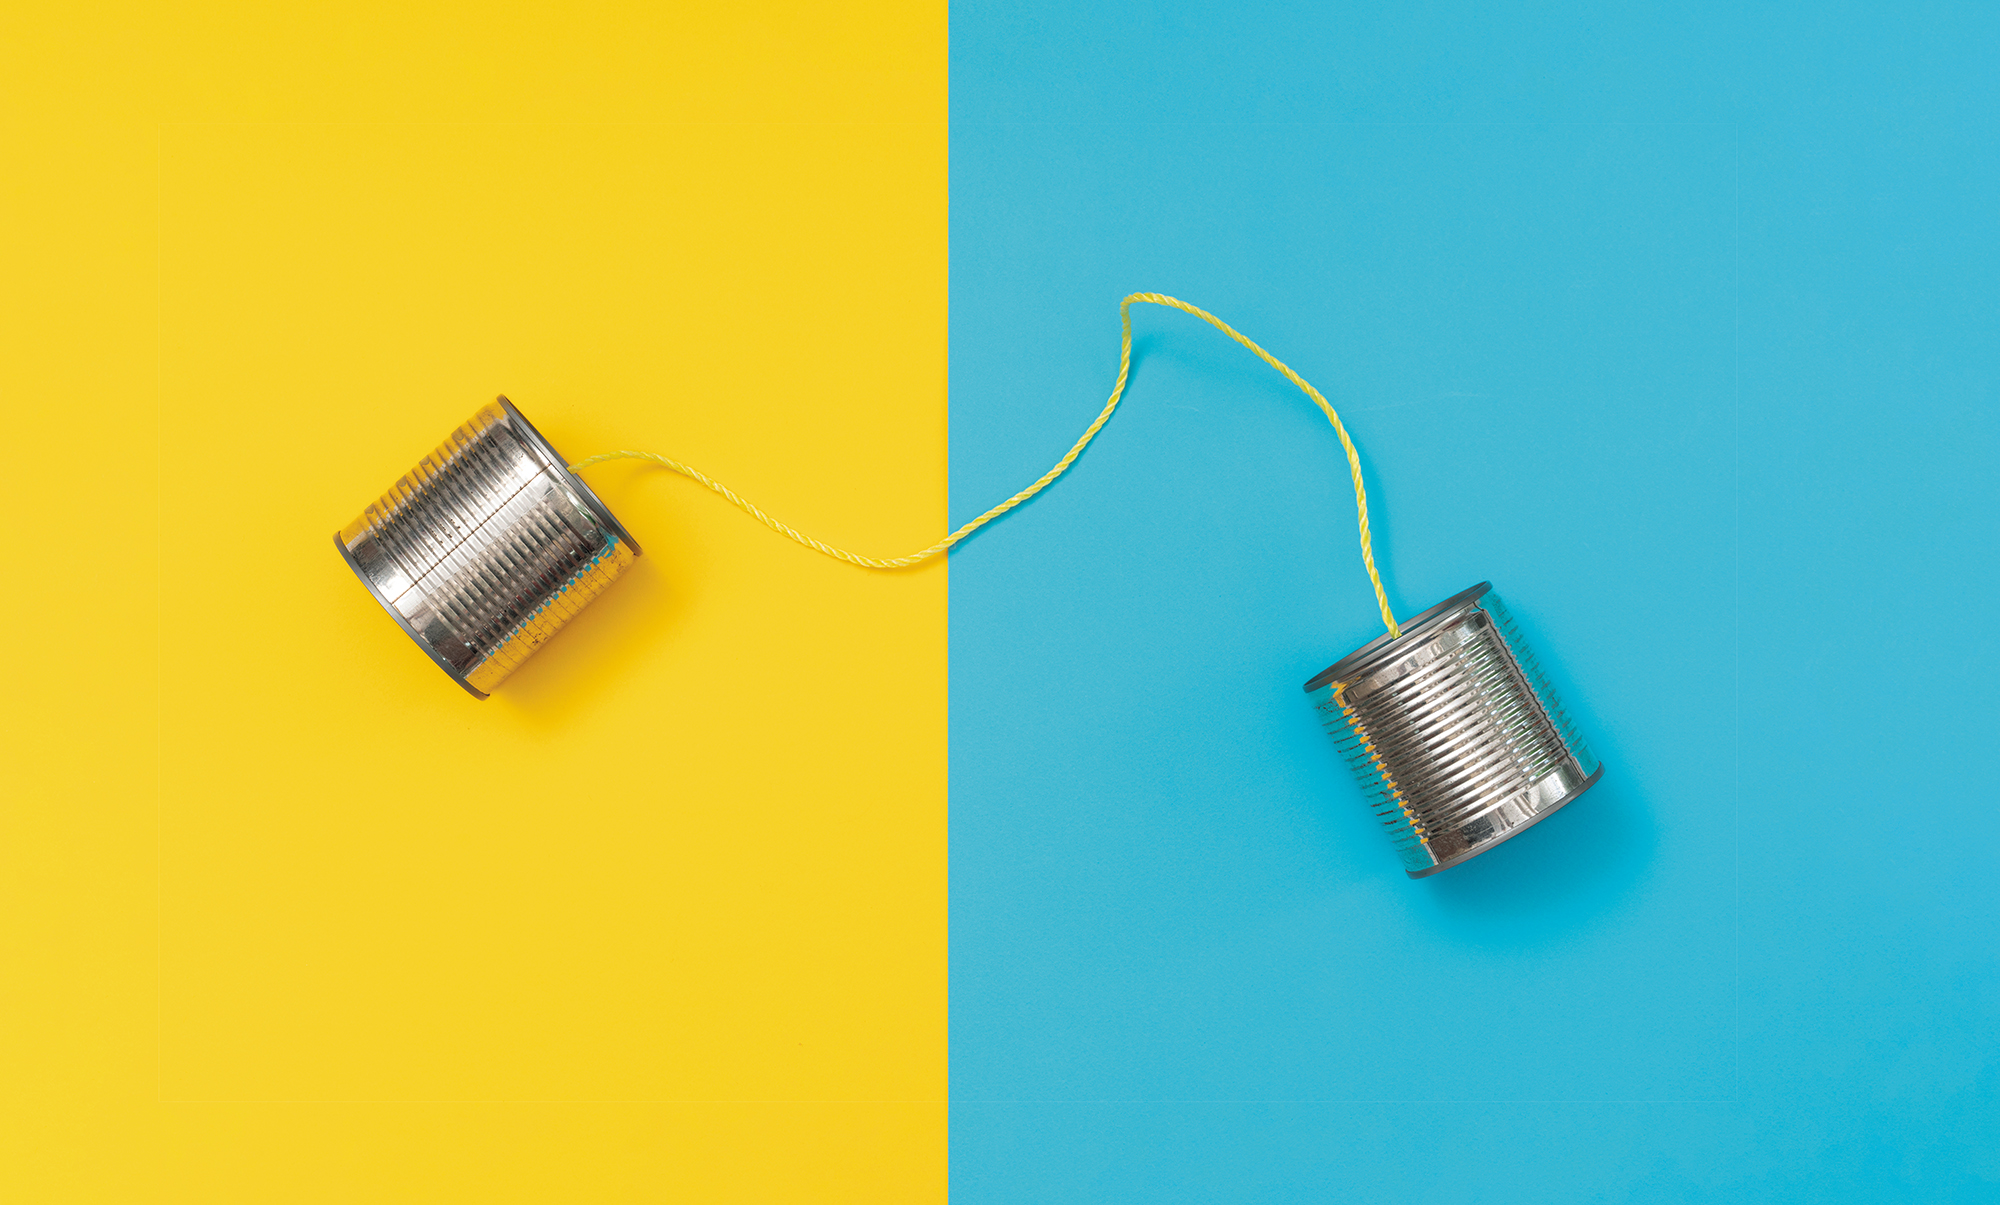 Tin can phone on yellow and blue paper backgrounds.